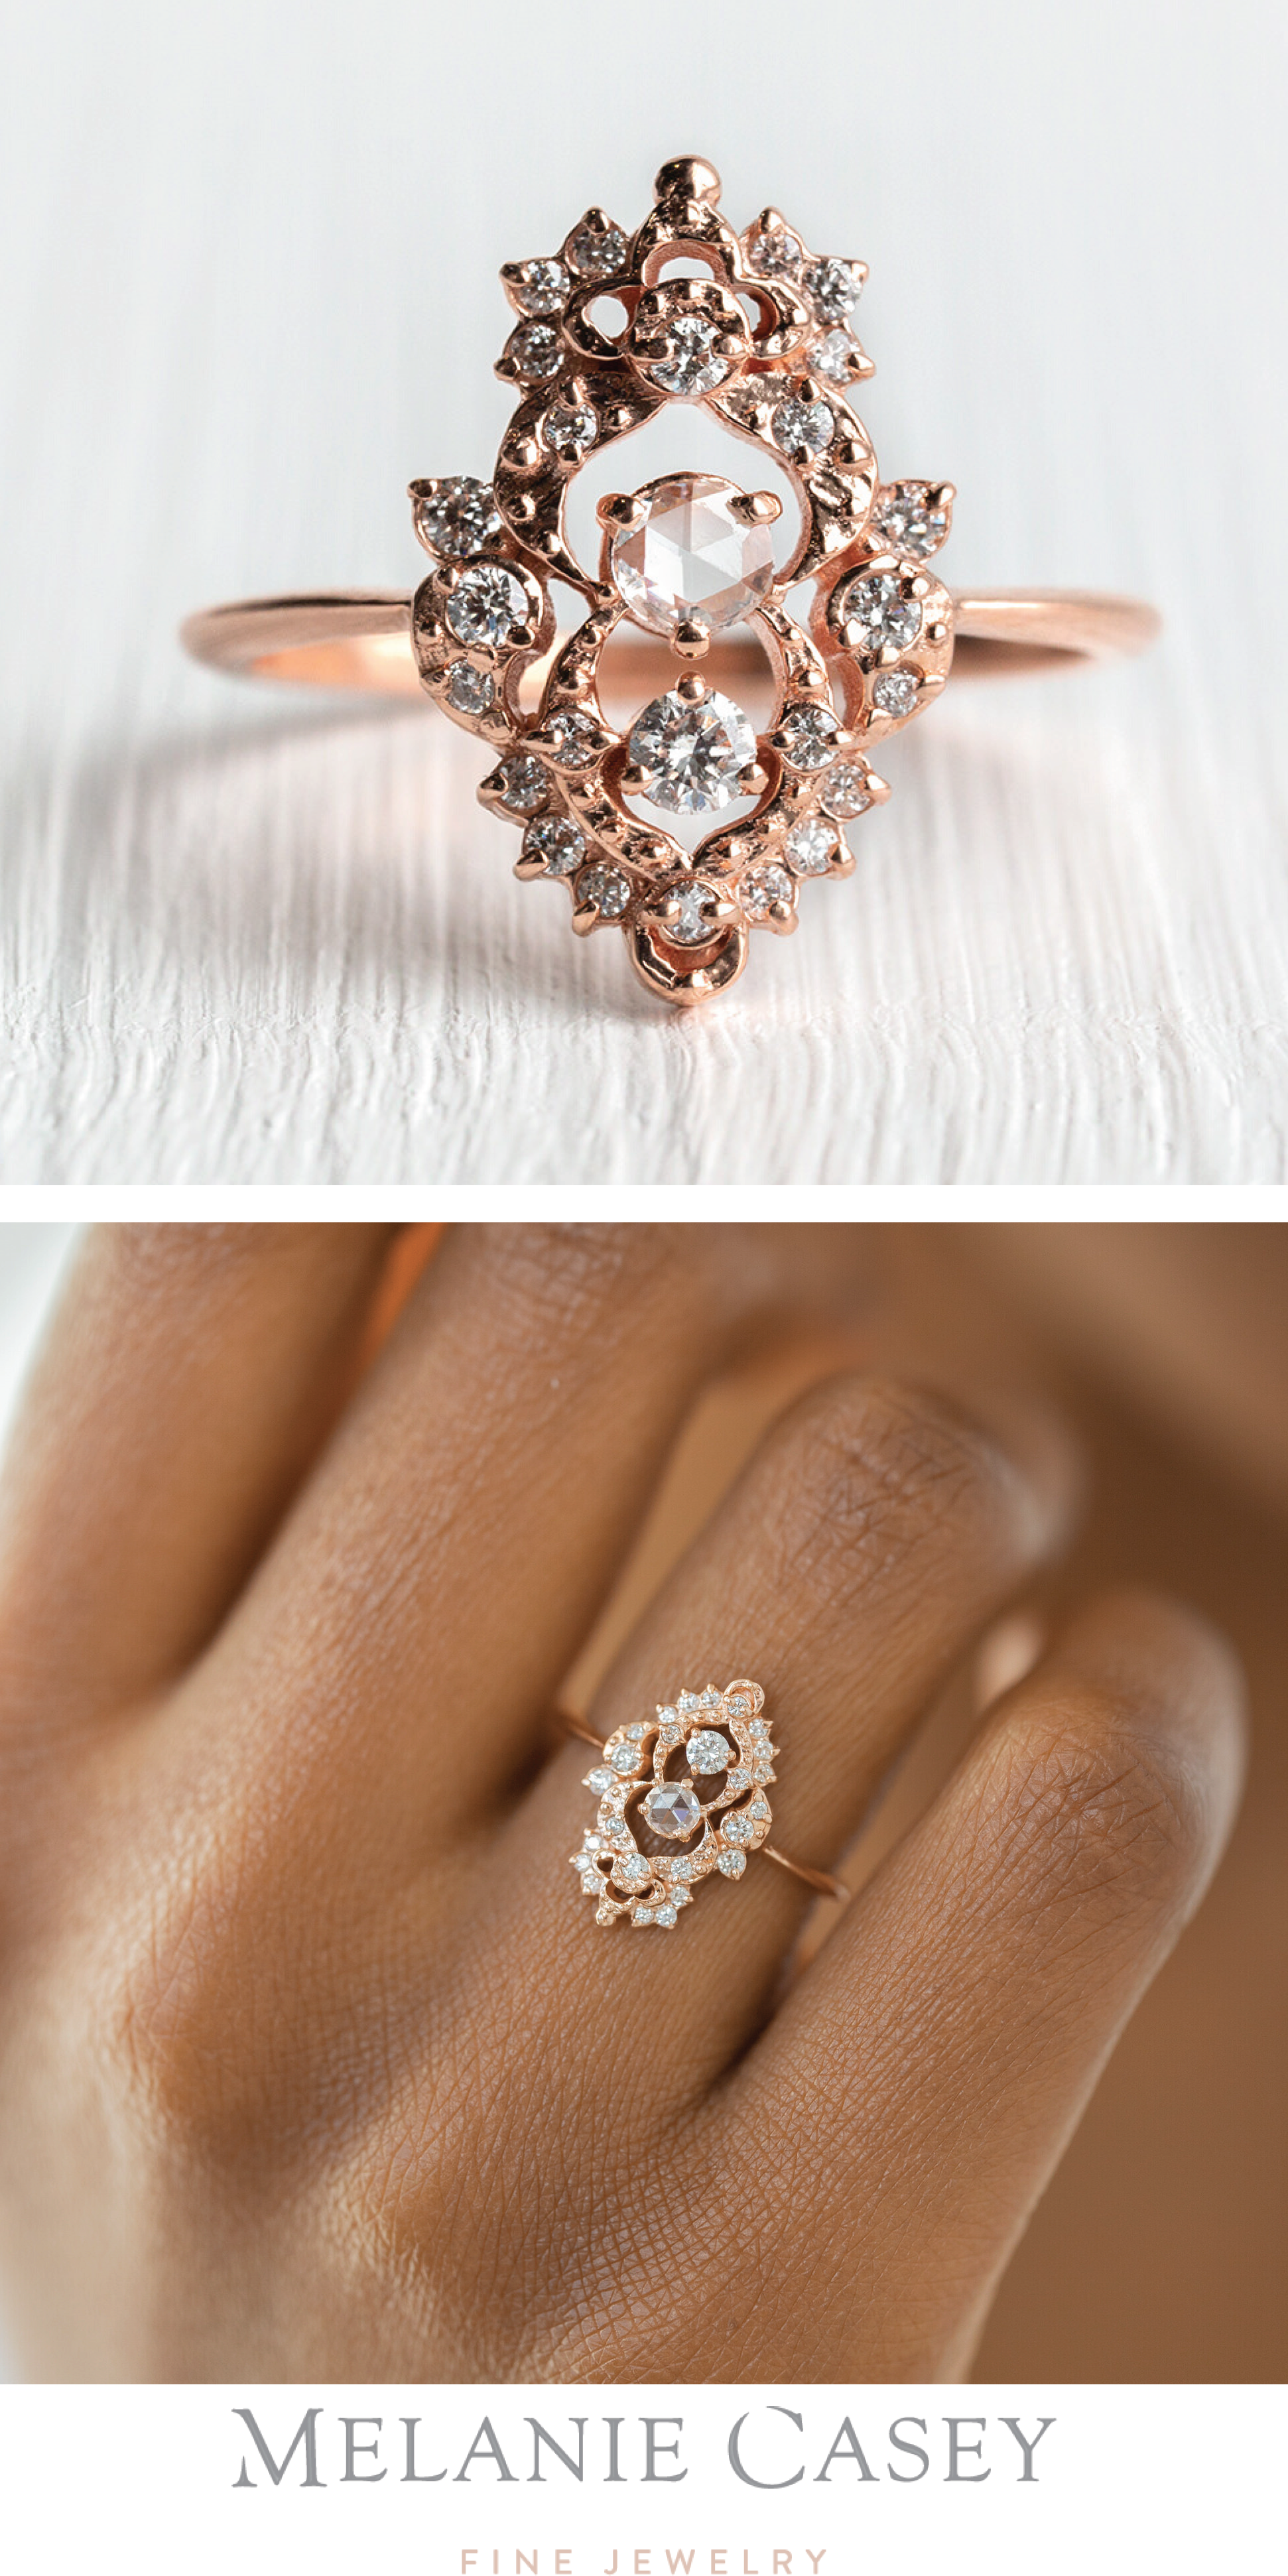 Details about  /Diamond Ring Natural Rose Cut Diamond /& 925 Sterling Silver Handmade Jewelry